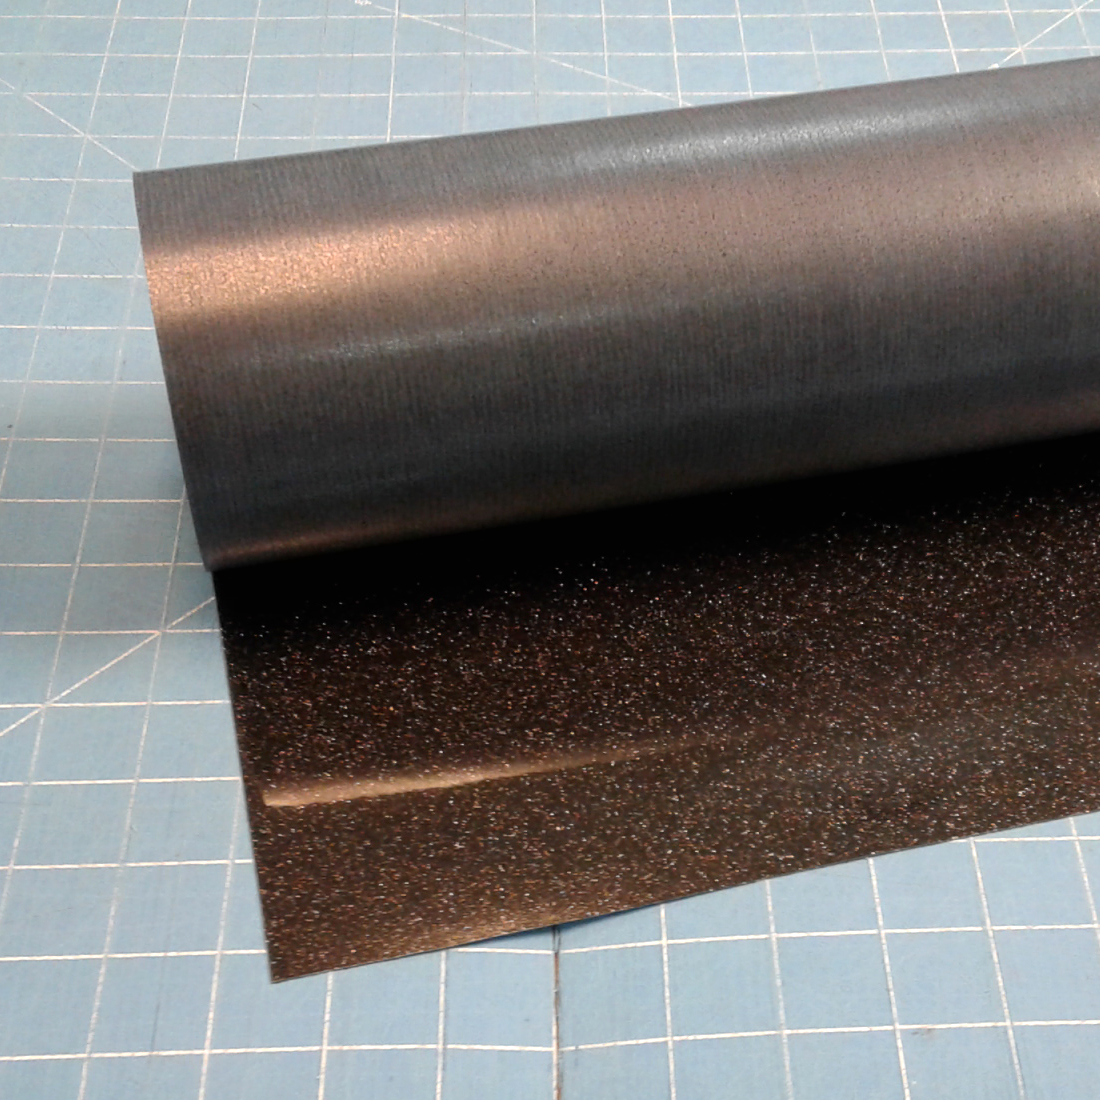 "Black Siser Glitter 20"" x 5' Iron on Heat Transfer Vinyl Roll, HTV"